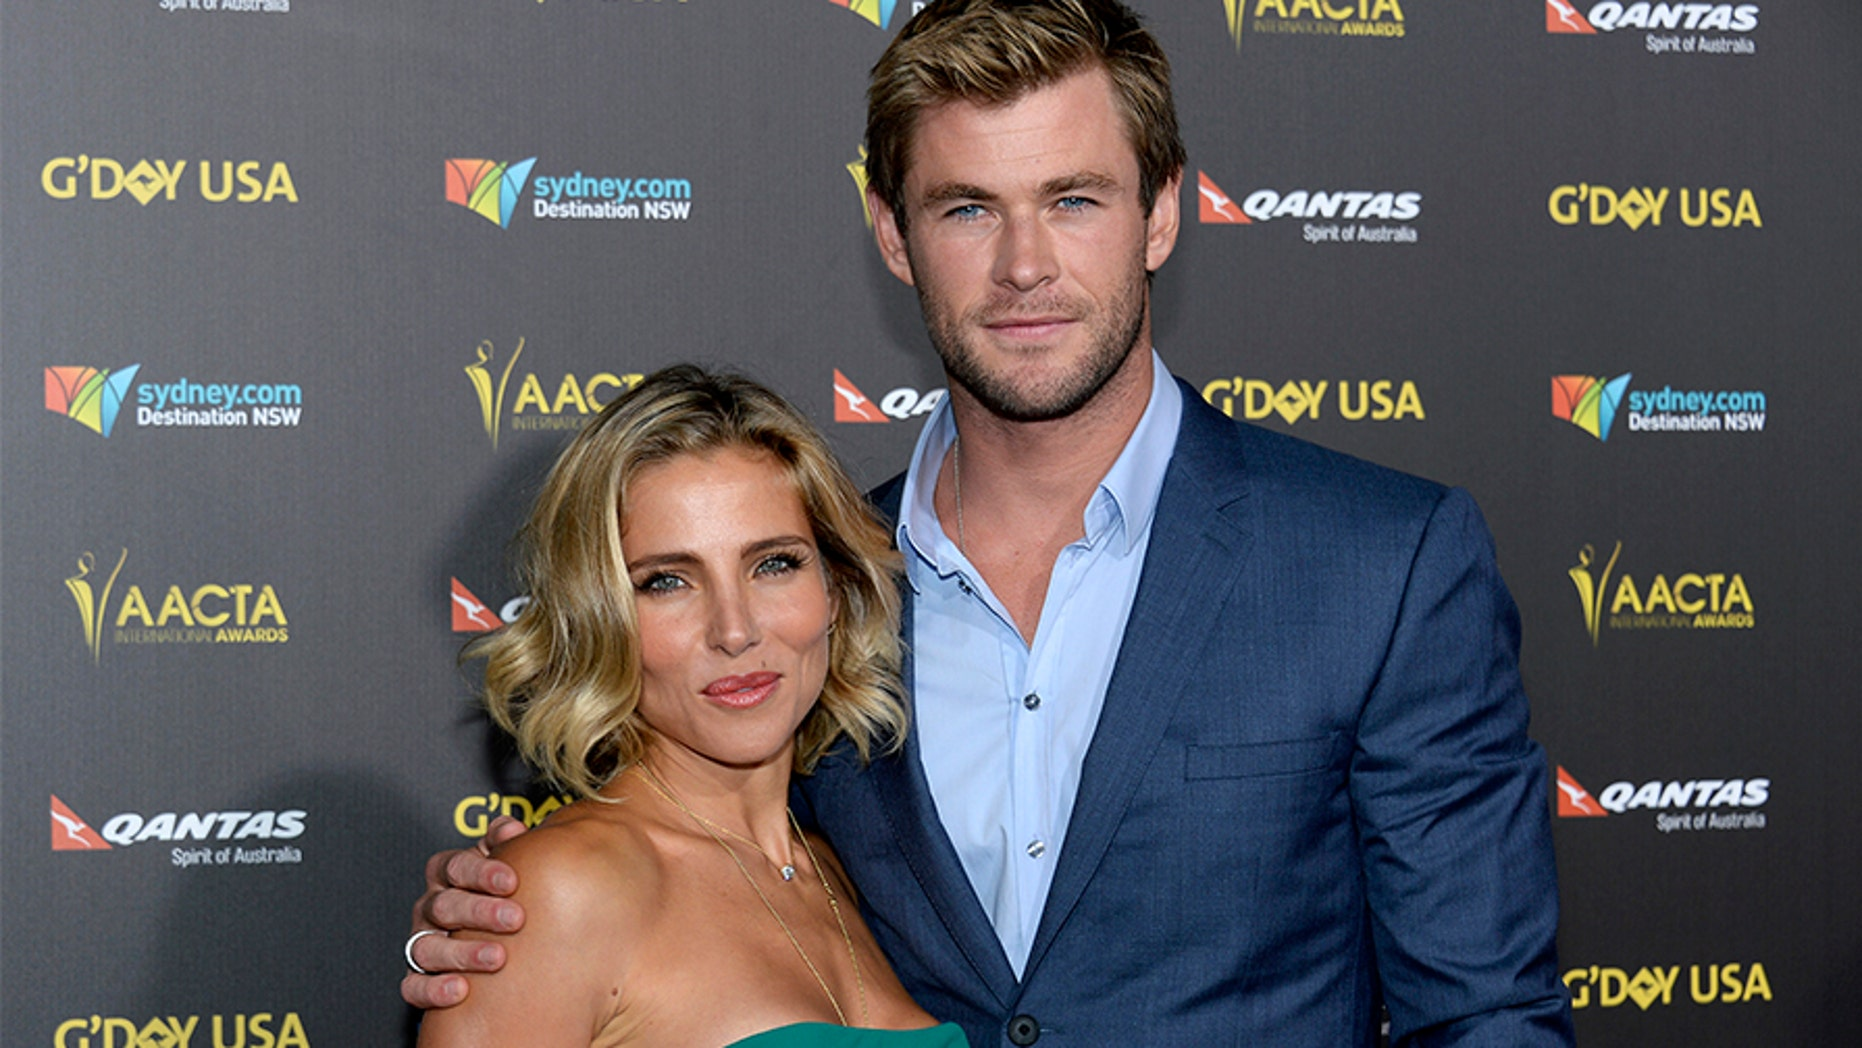 Actors Chris Hemsworth and Elsa Pataky in a file photo from 2015.